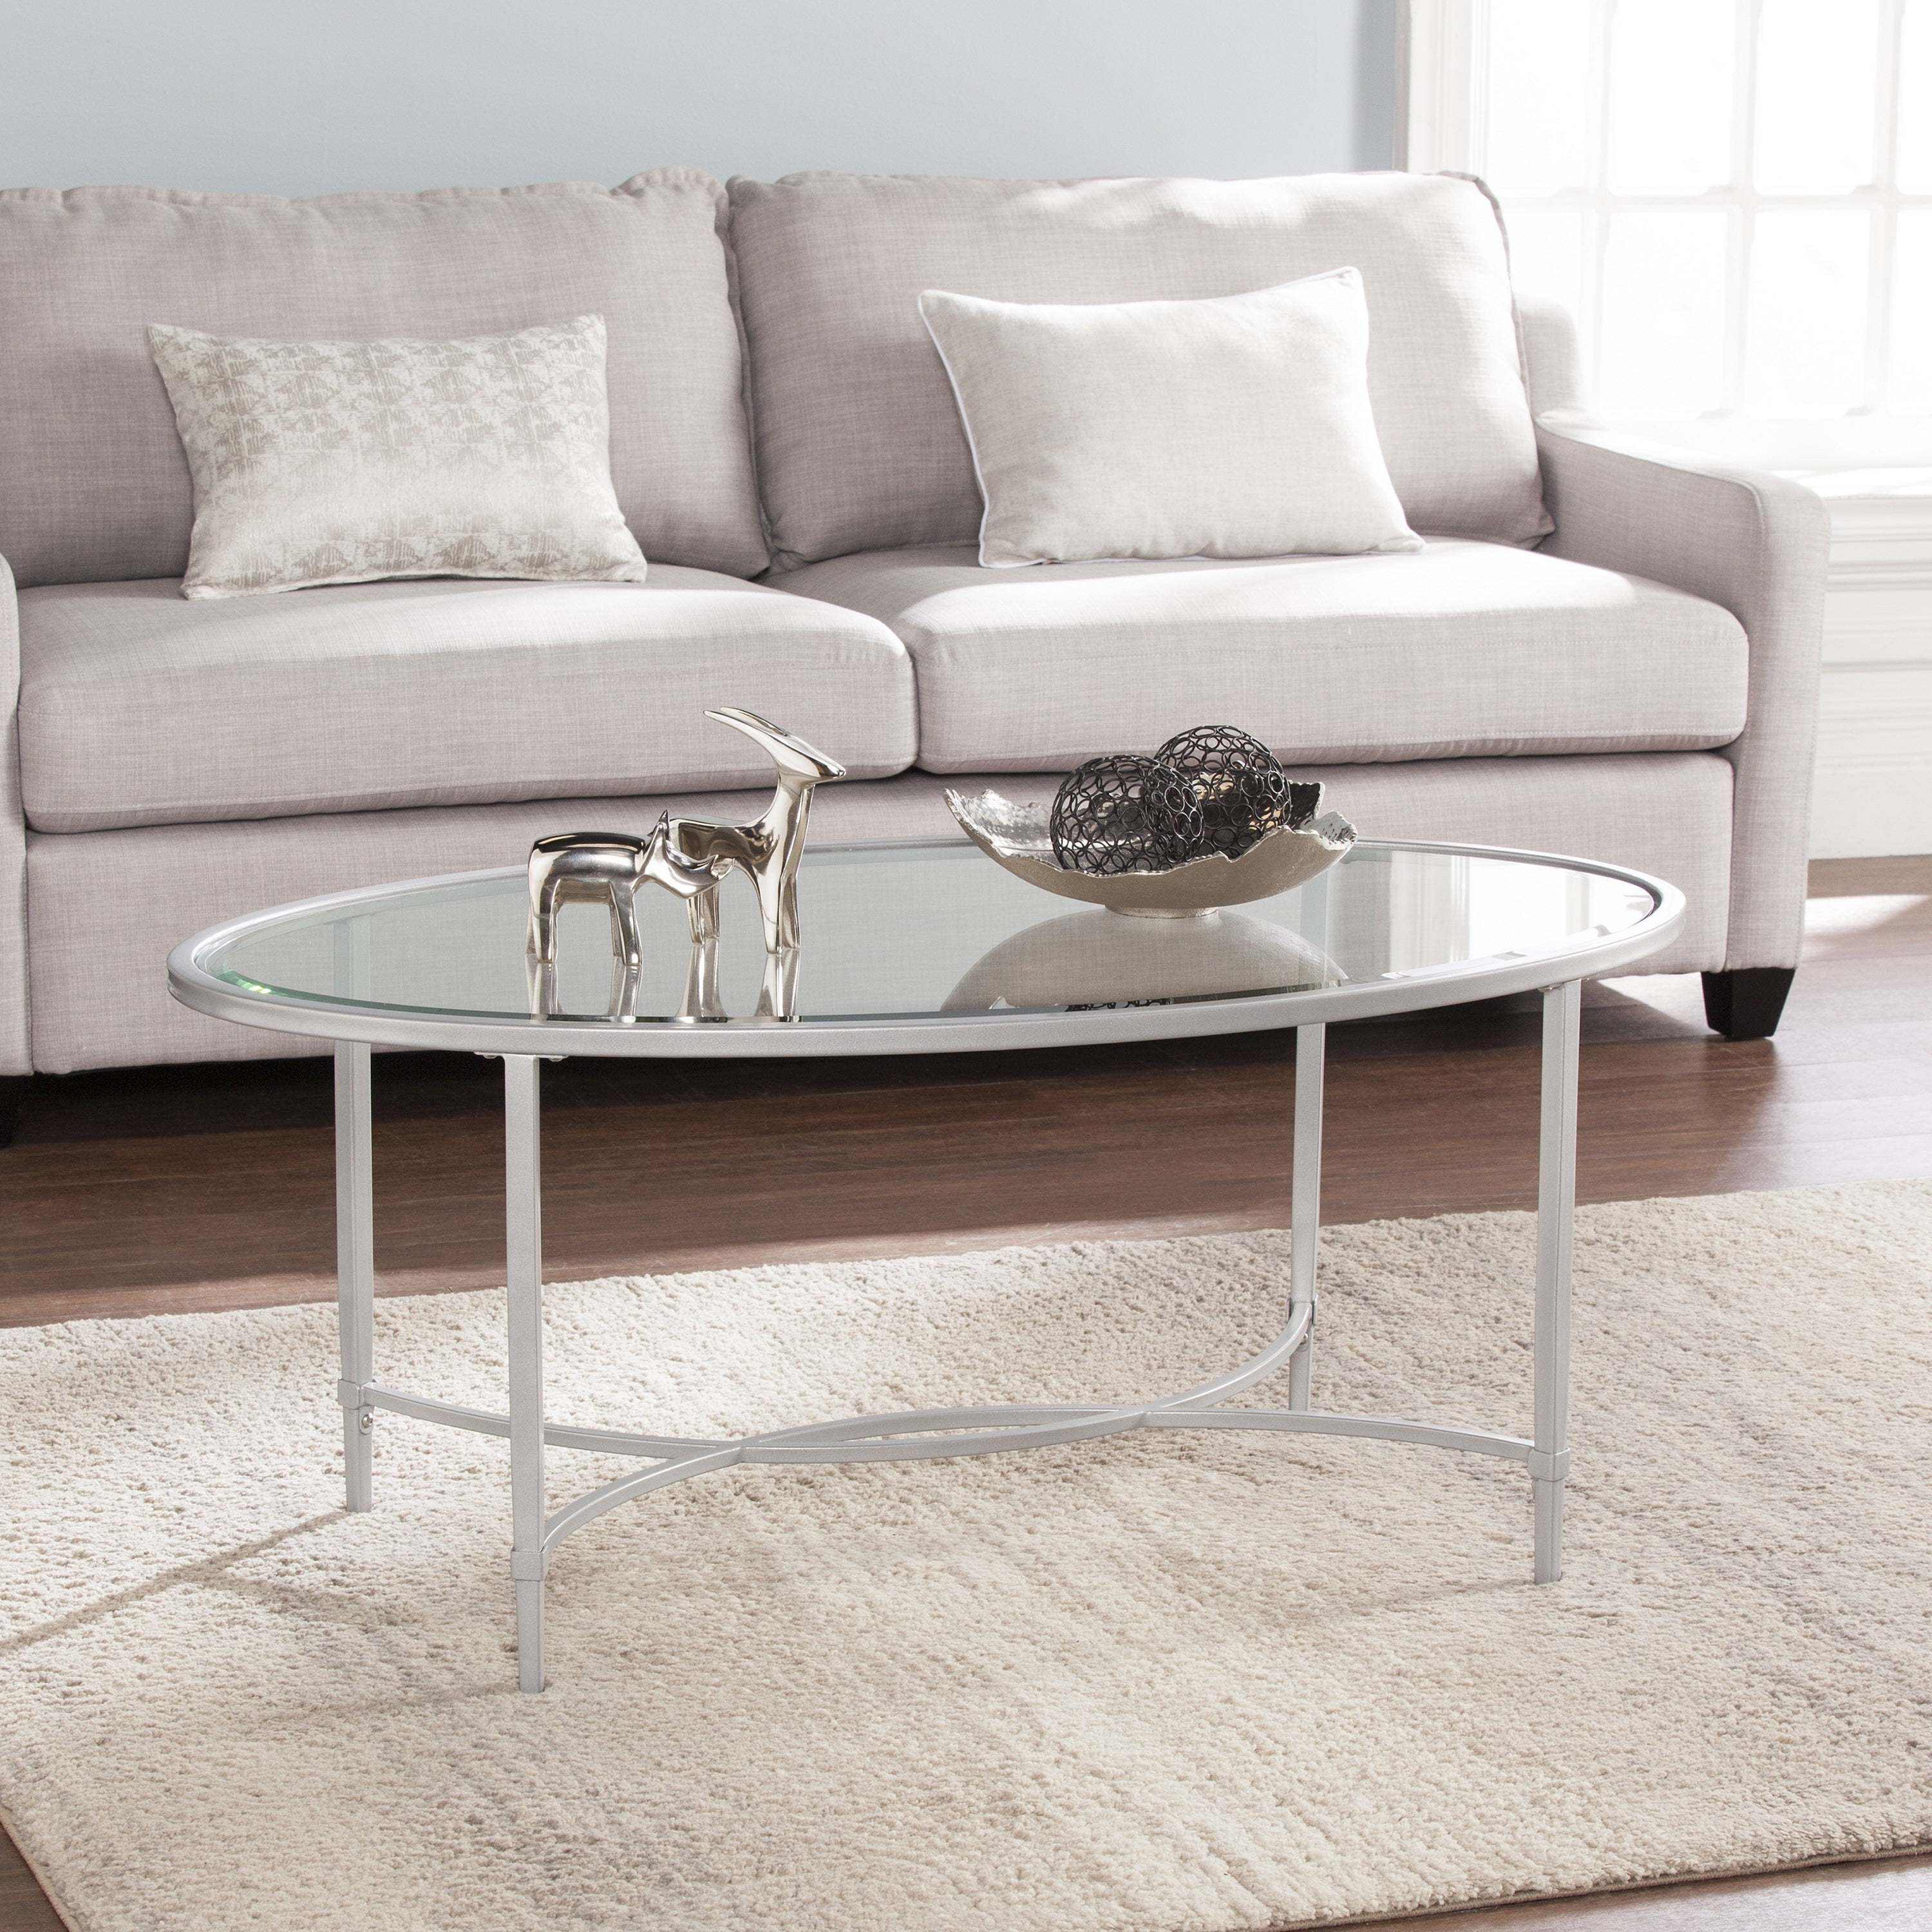 Trendy Harper Blvd Alecia Coffee Cocktail Tables Intended For Harper Blvd Quaker Metal/glass Oval Cocktail Table – Silver (View 14 of 20)